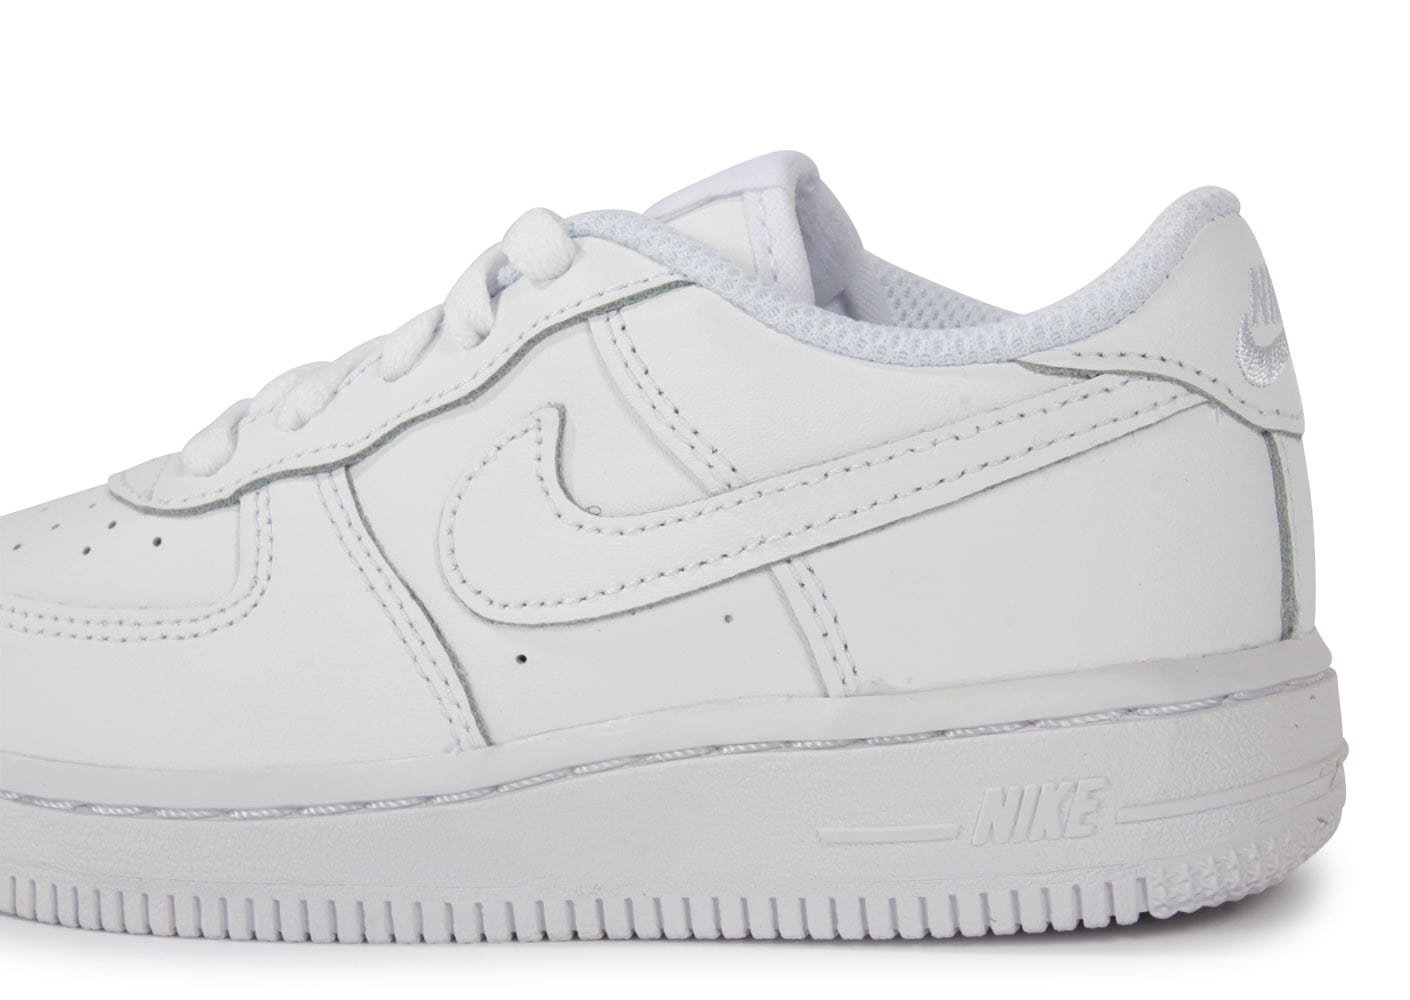 nike air force 1 b b blanche chaussures chaussures chausport. Black Bedroom Furniture Sets. Home Design Ideas